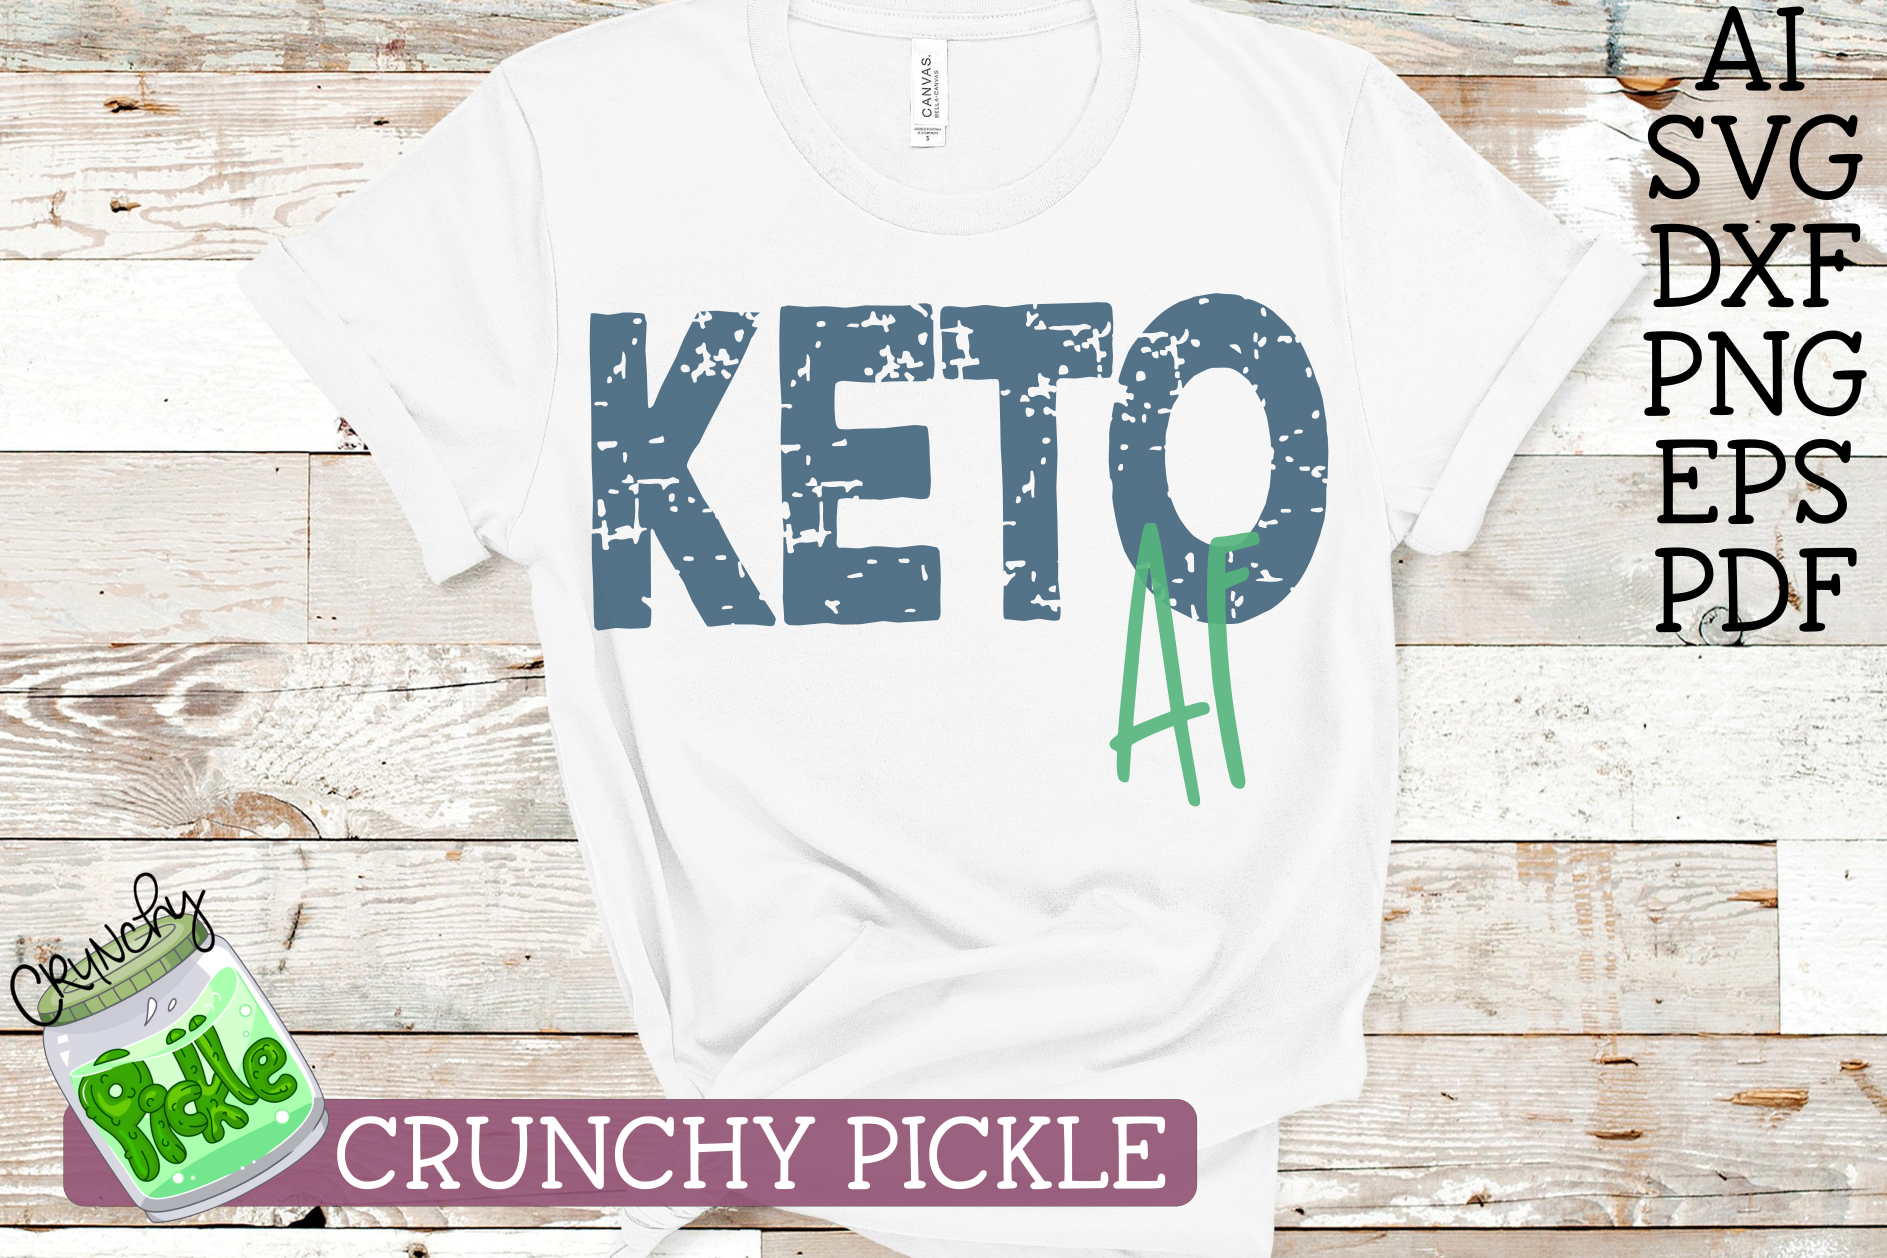 Download Free Keto Af Keto Diet Svg File Graphic By Crunchy Pickle for Cricut Explore, Silhouette and other cutting machines.